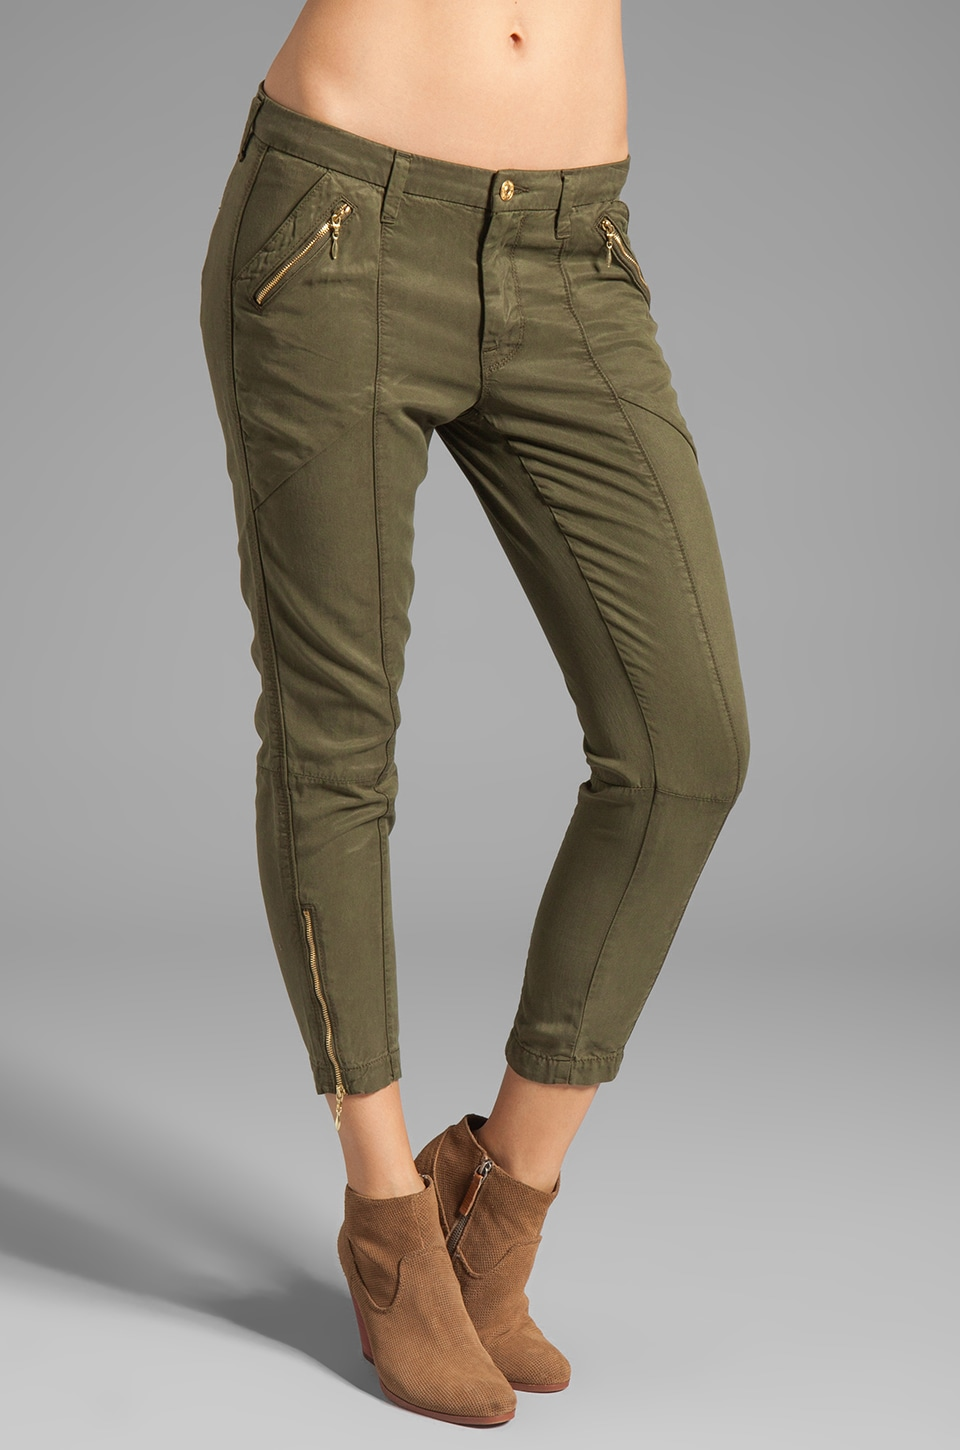 7 For All Mankind Zip Chino in Olive Drapey Twill